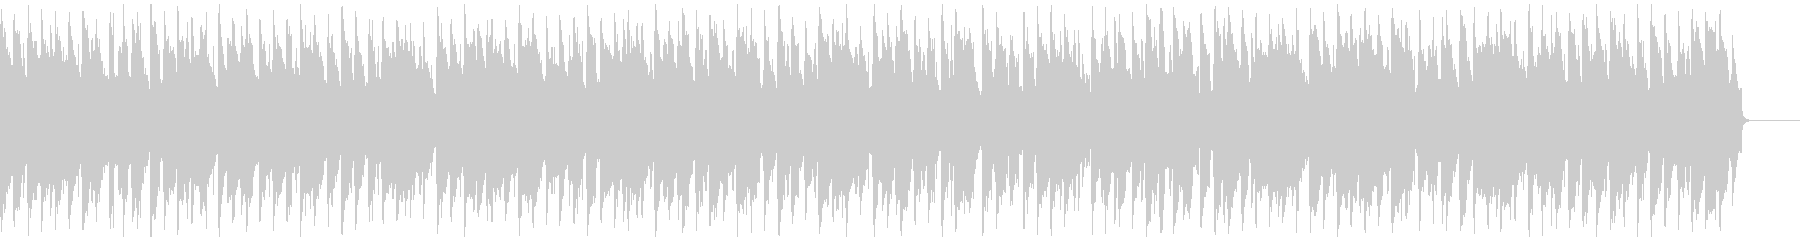 Handel recorder without rhythm for the award ceremony's unreproduced waveform